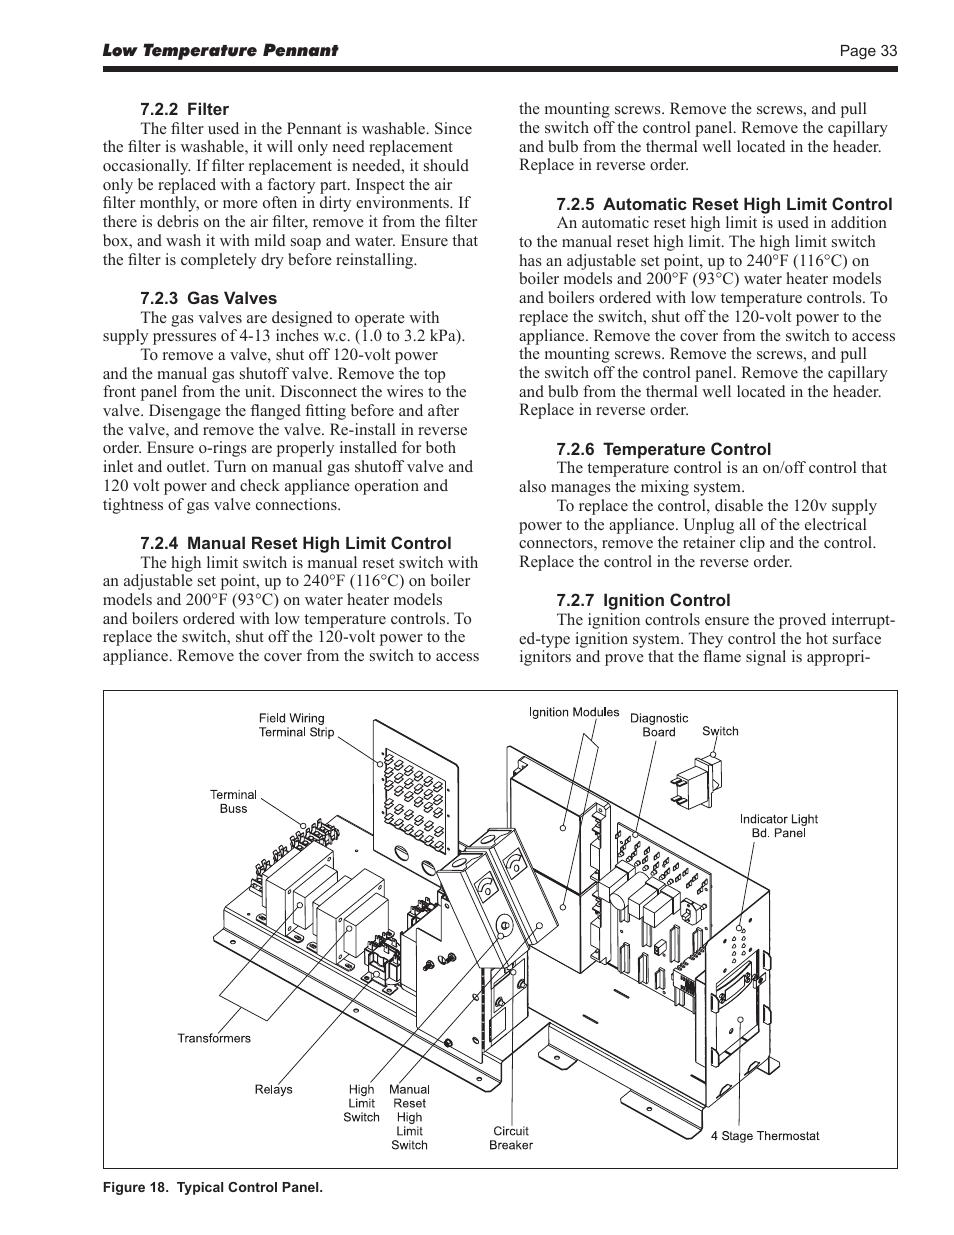 medium resolution of laars pennant pncv install and operating manual user manual page 33 44 also for pennant pnch install and operating manual